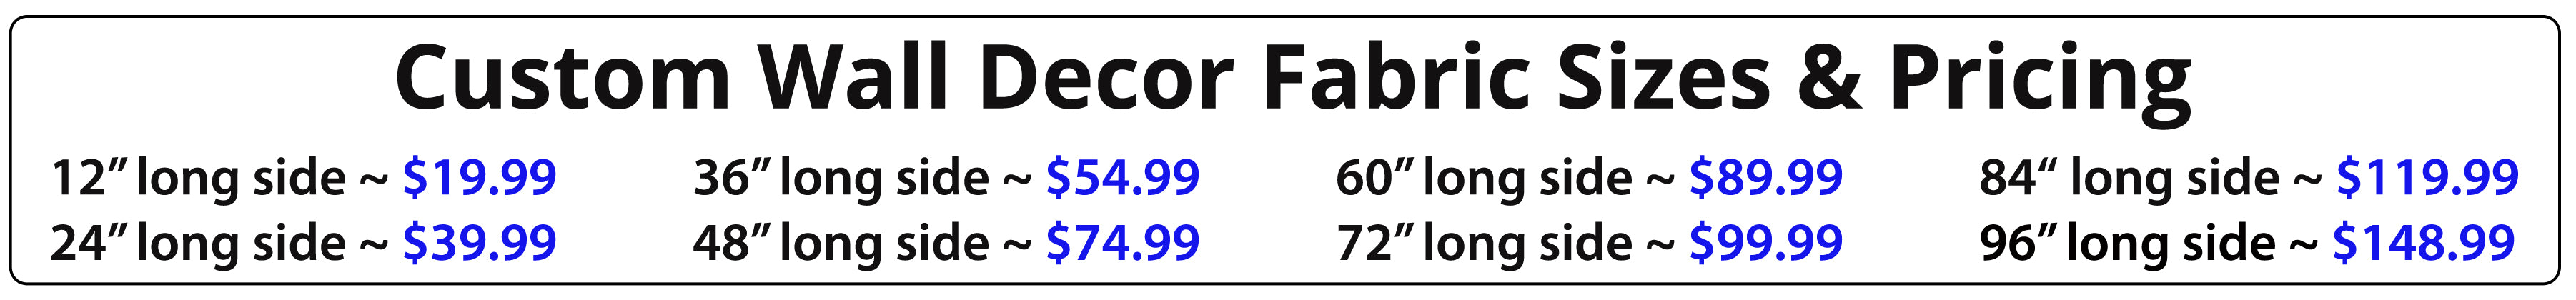 Wallhogs Custom Wall Decor Fabric Pricing